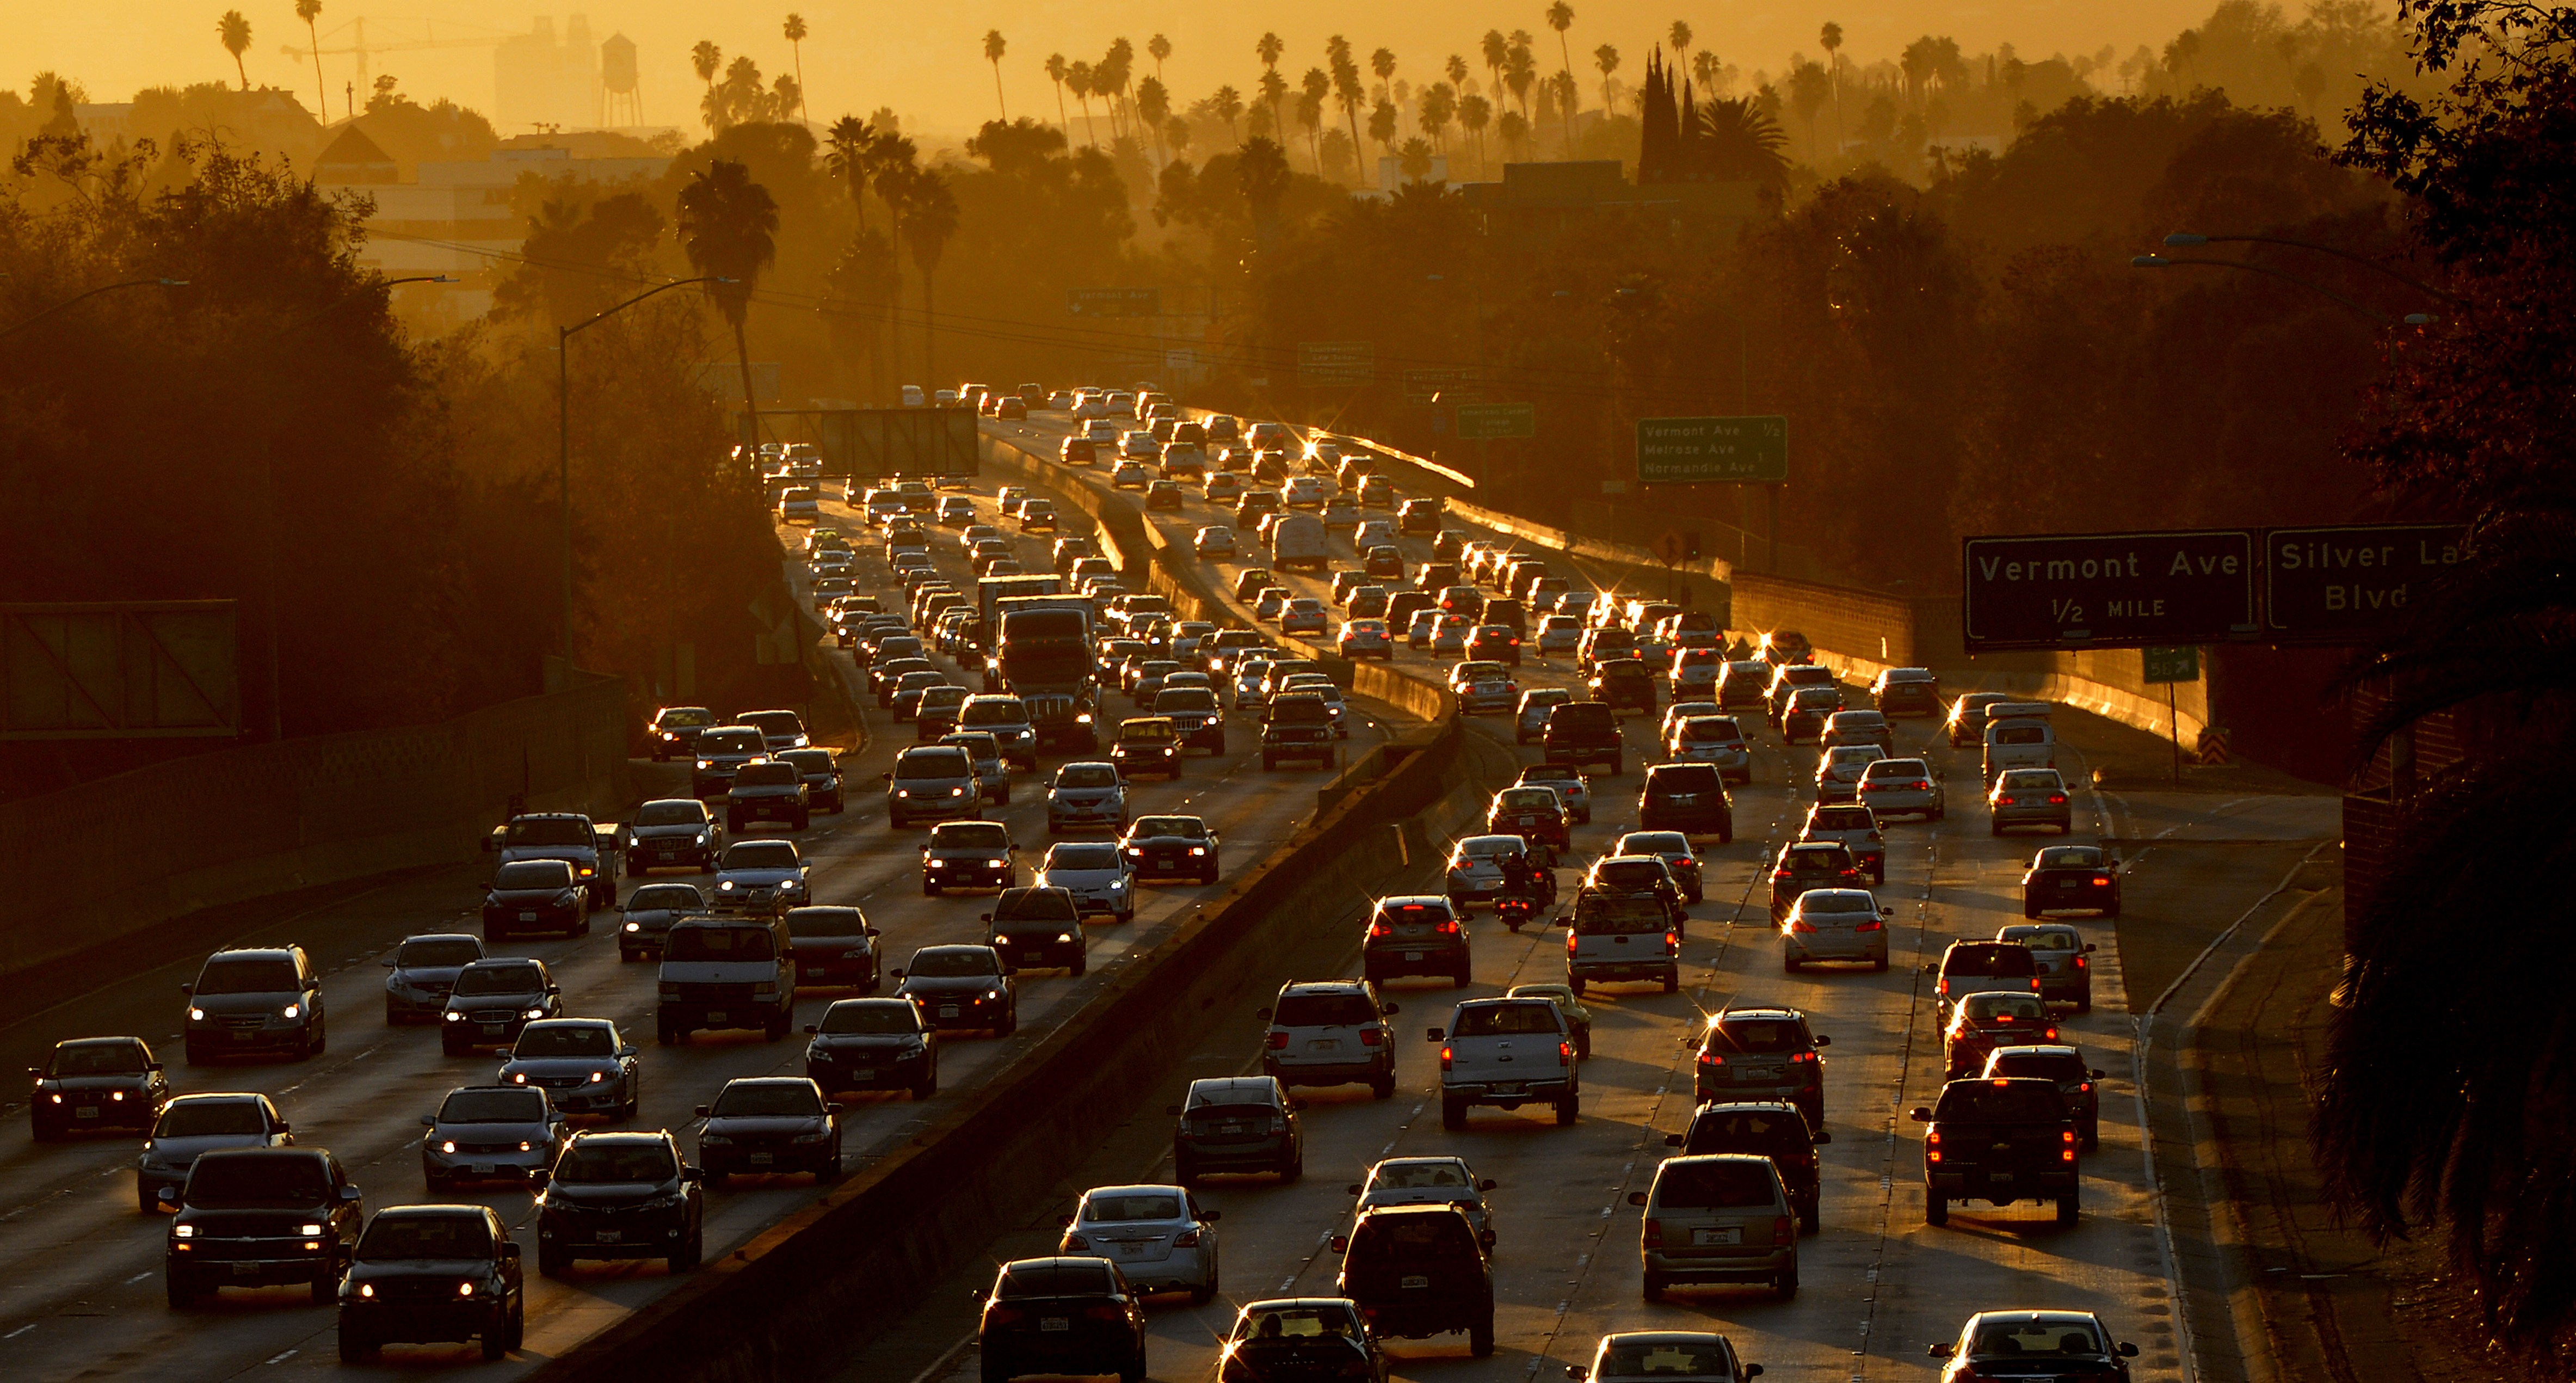 Heavy traffic clogs the 101 Freeway as people leave work for the Labor Day holiday in Los Angeles on August 29, 2014.